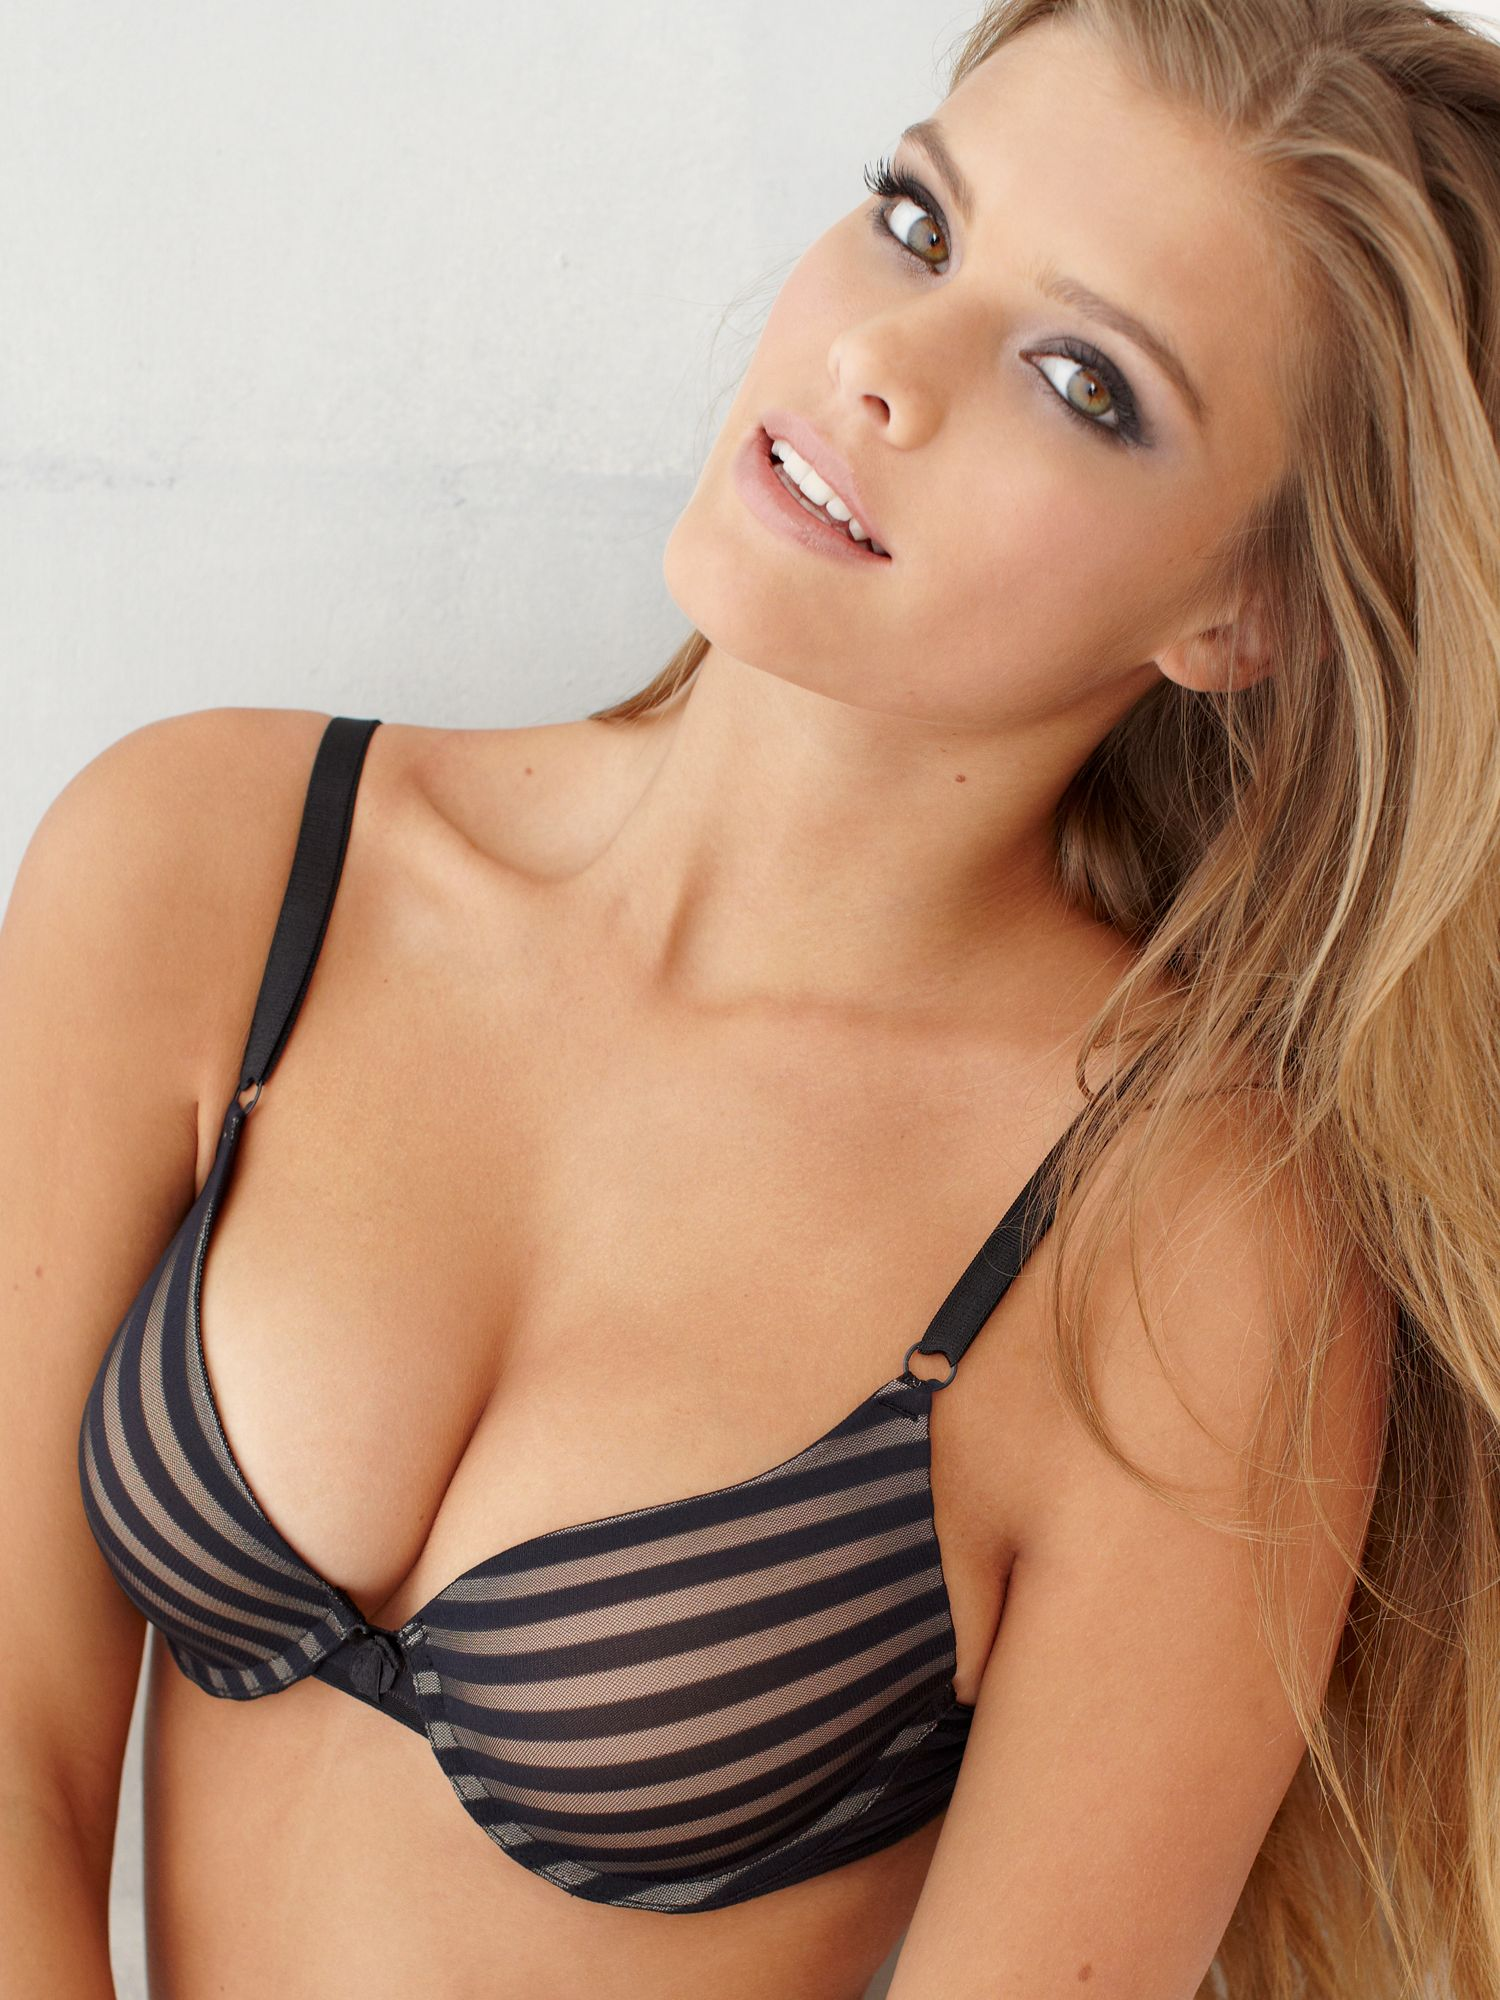 Nina Agdal photo 49 of 1623 pics, wallpaper - photo ...